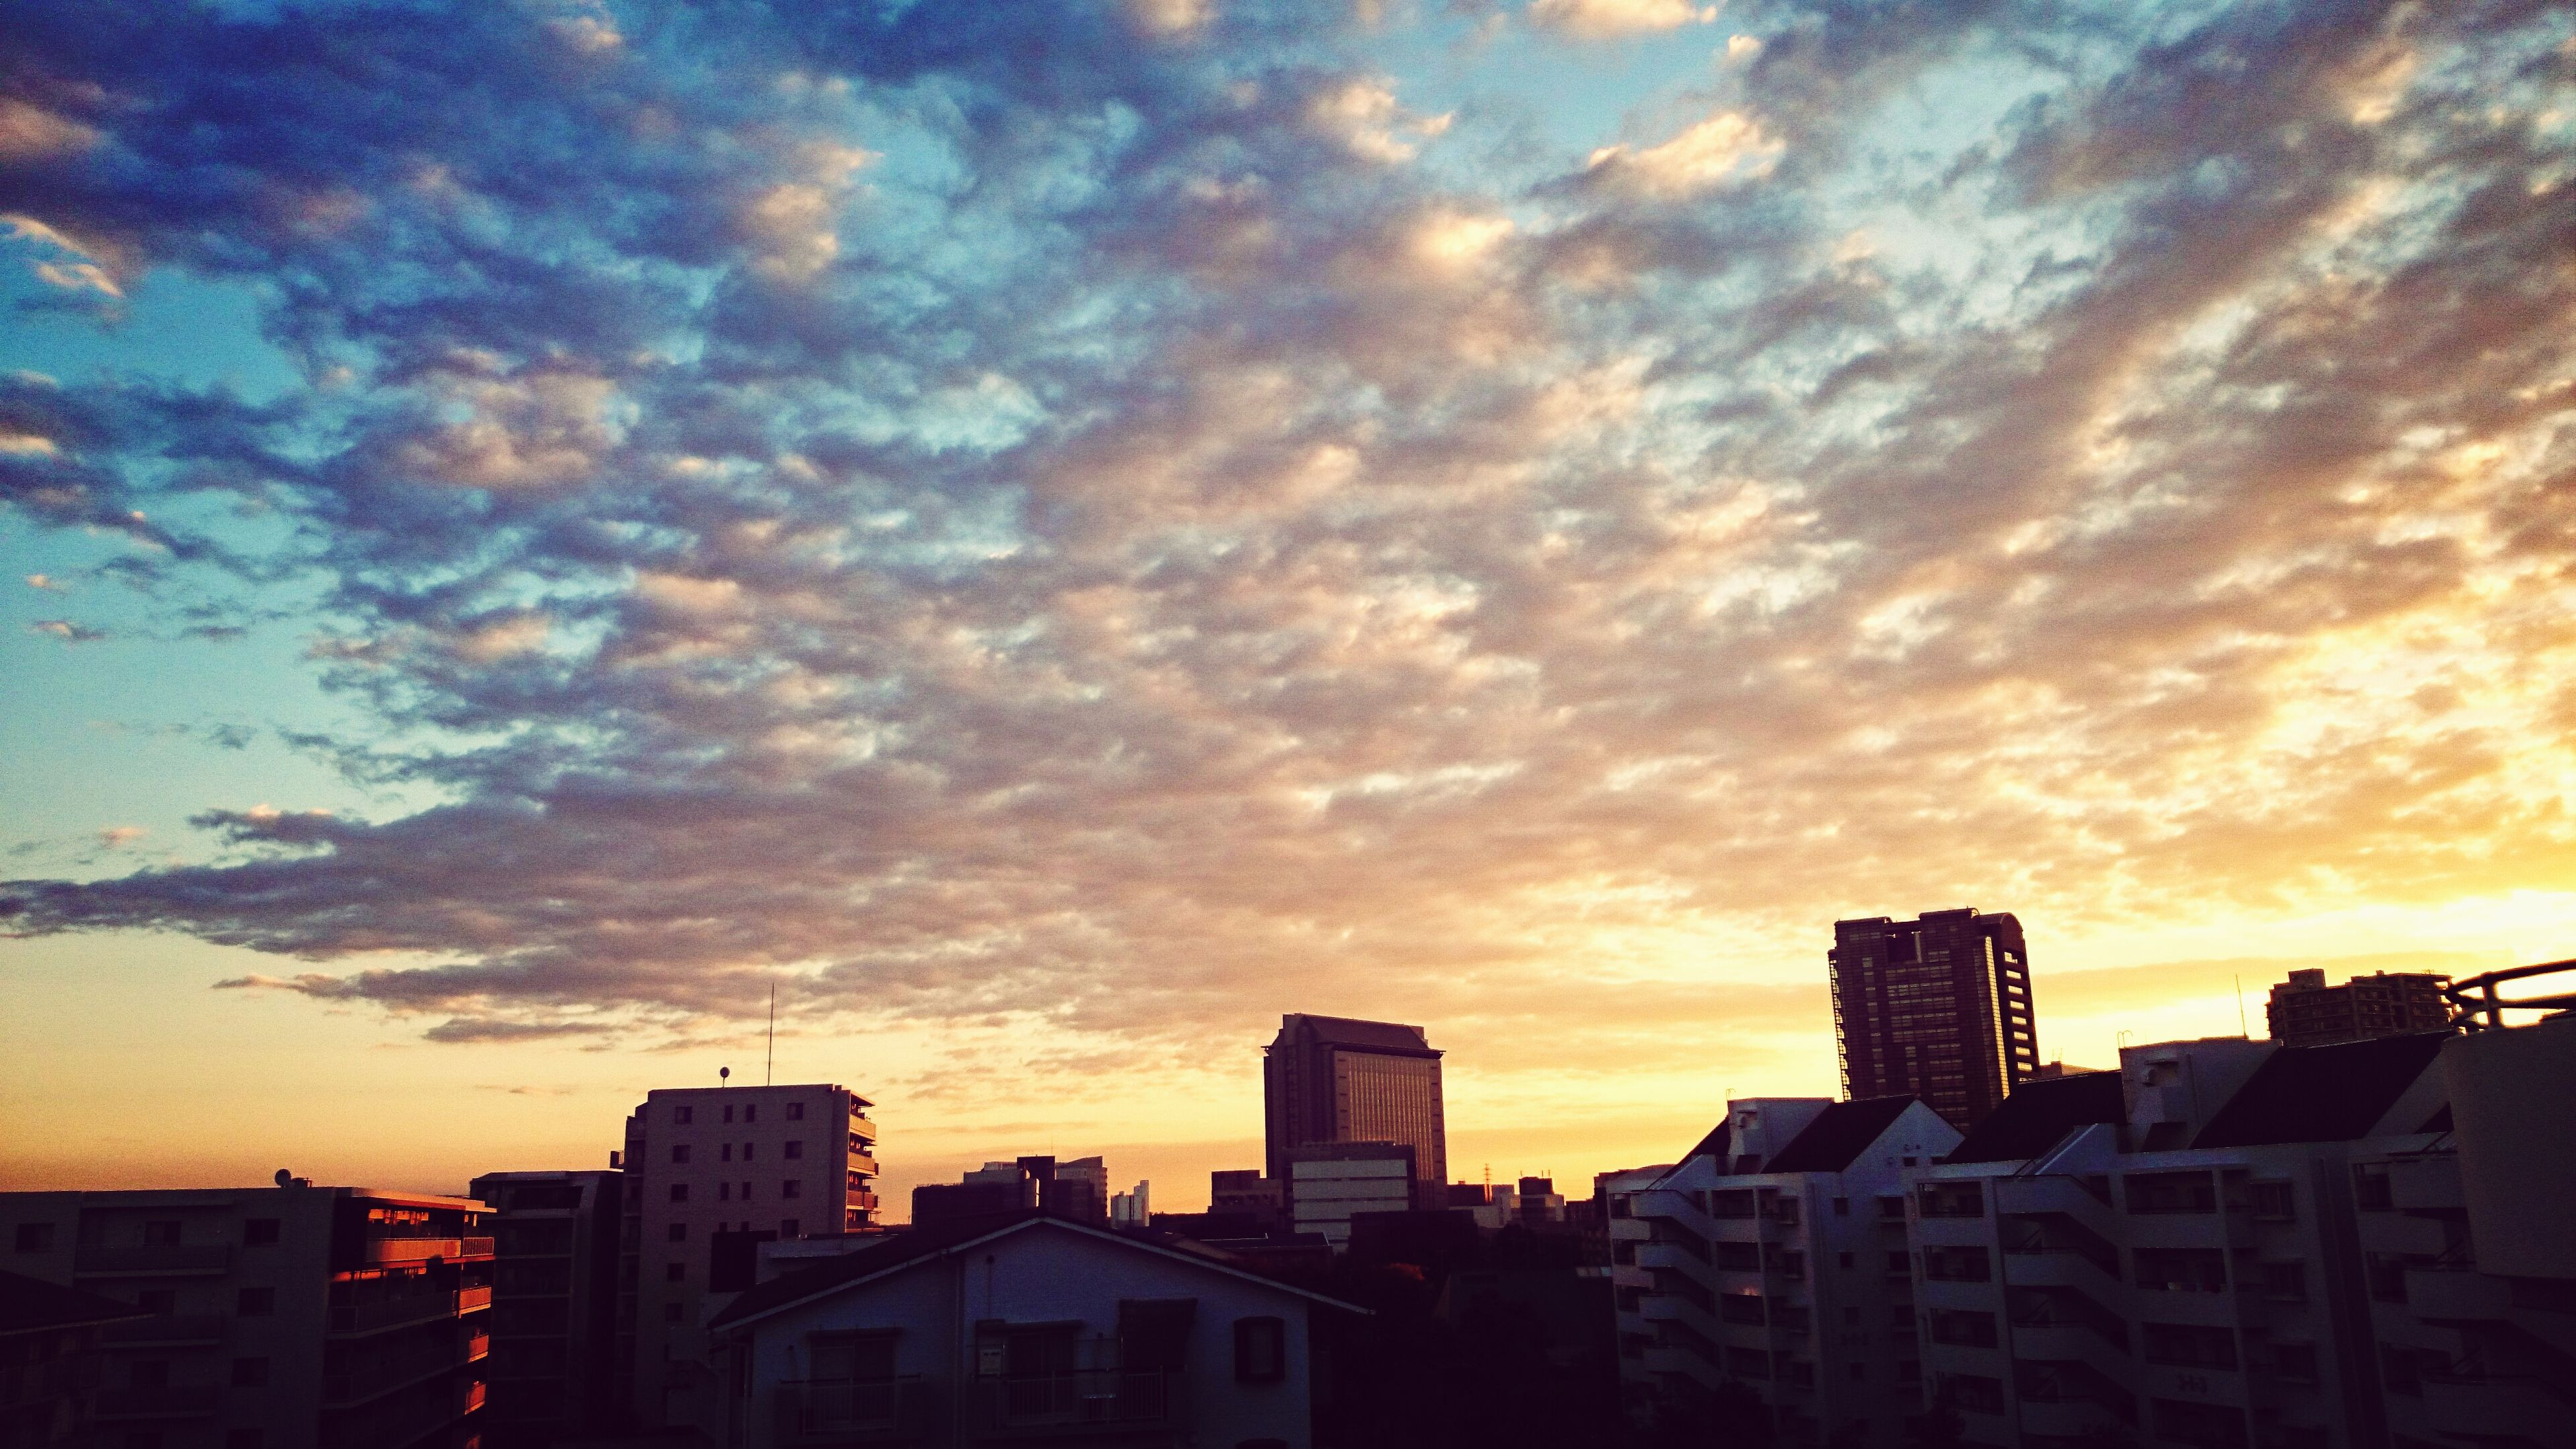 sunset, building exterior, architecture, built structure, sky, orange color, cloud - sky, city, silhouette, cloudy, dramatic sky, residential structure, residential building, cityscape, building, cloud, weather, residential district, house, outdoors